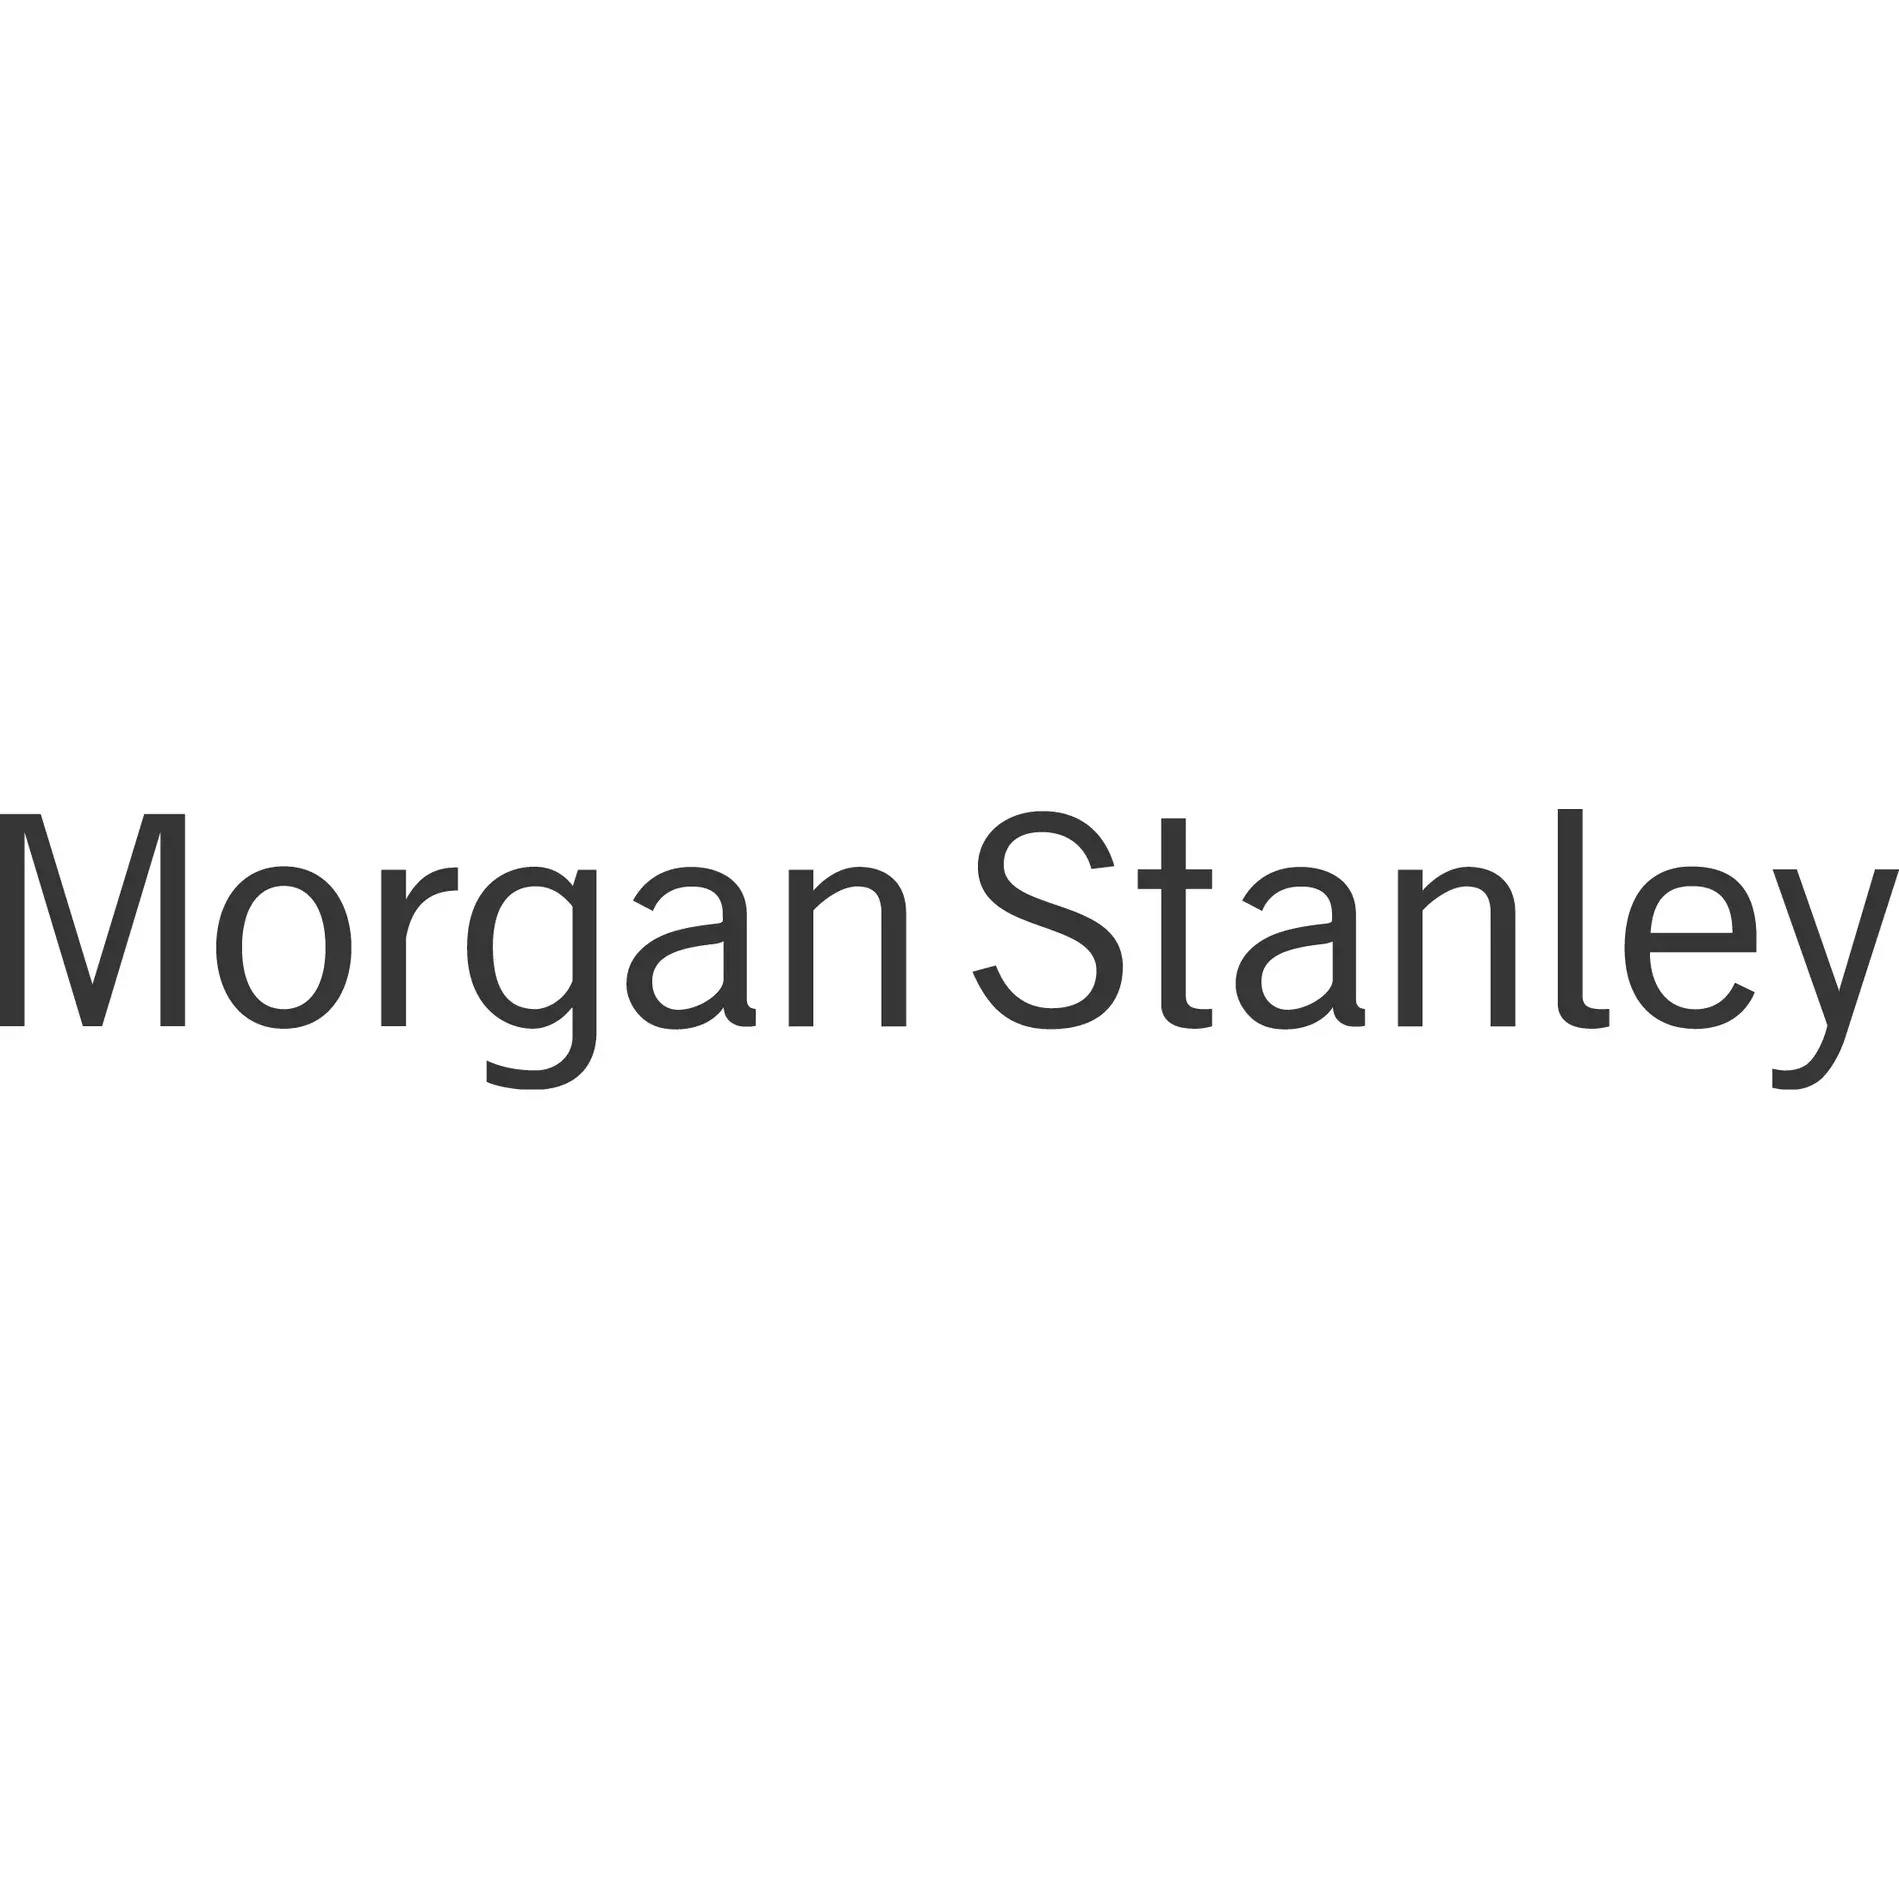 The Klausner Duffy DiSalvo Investment Group - Morgan Stanley | Financial Advisor in Indianapolis,Indiana